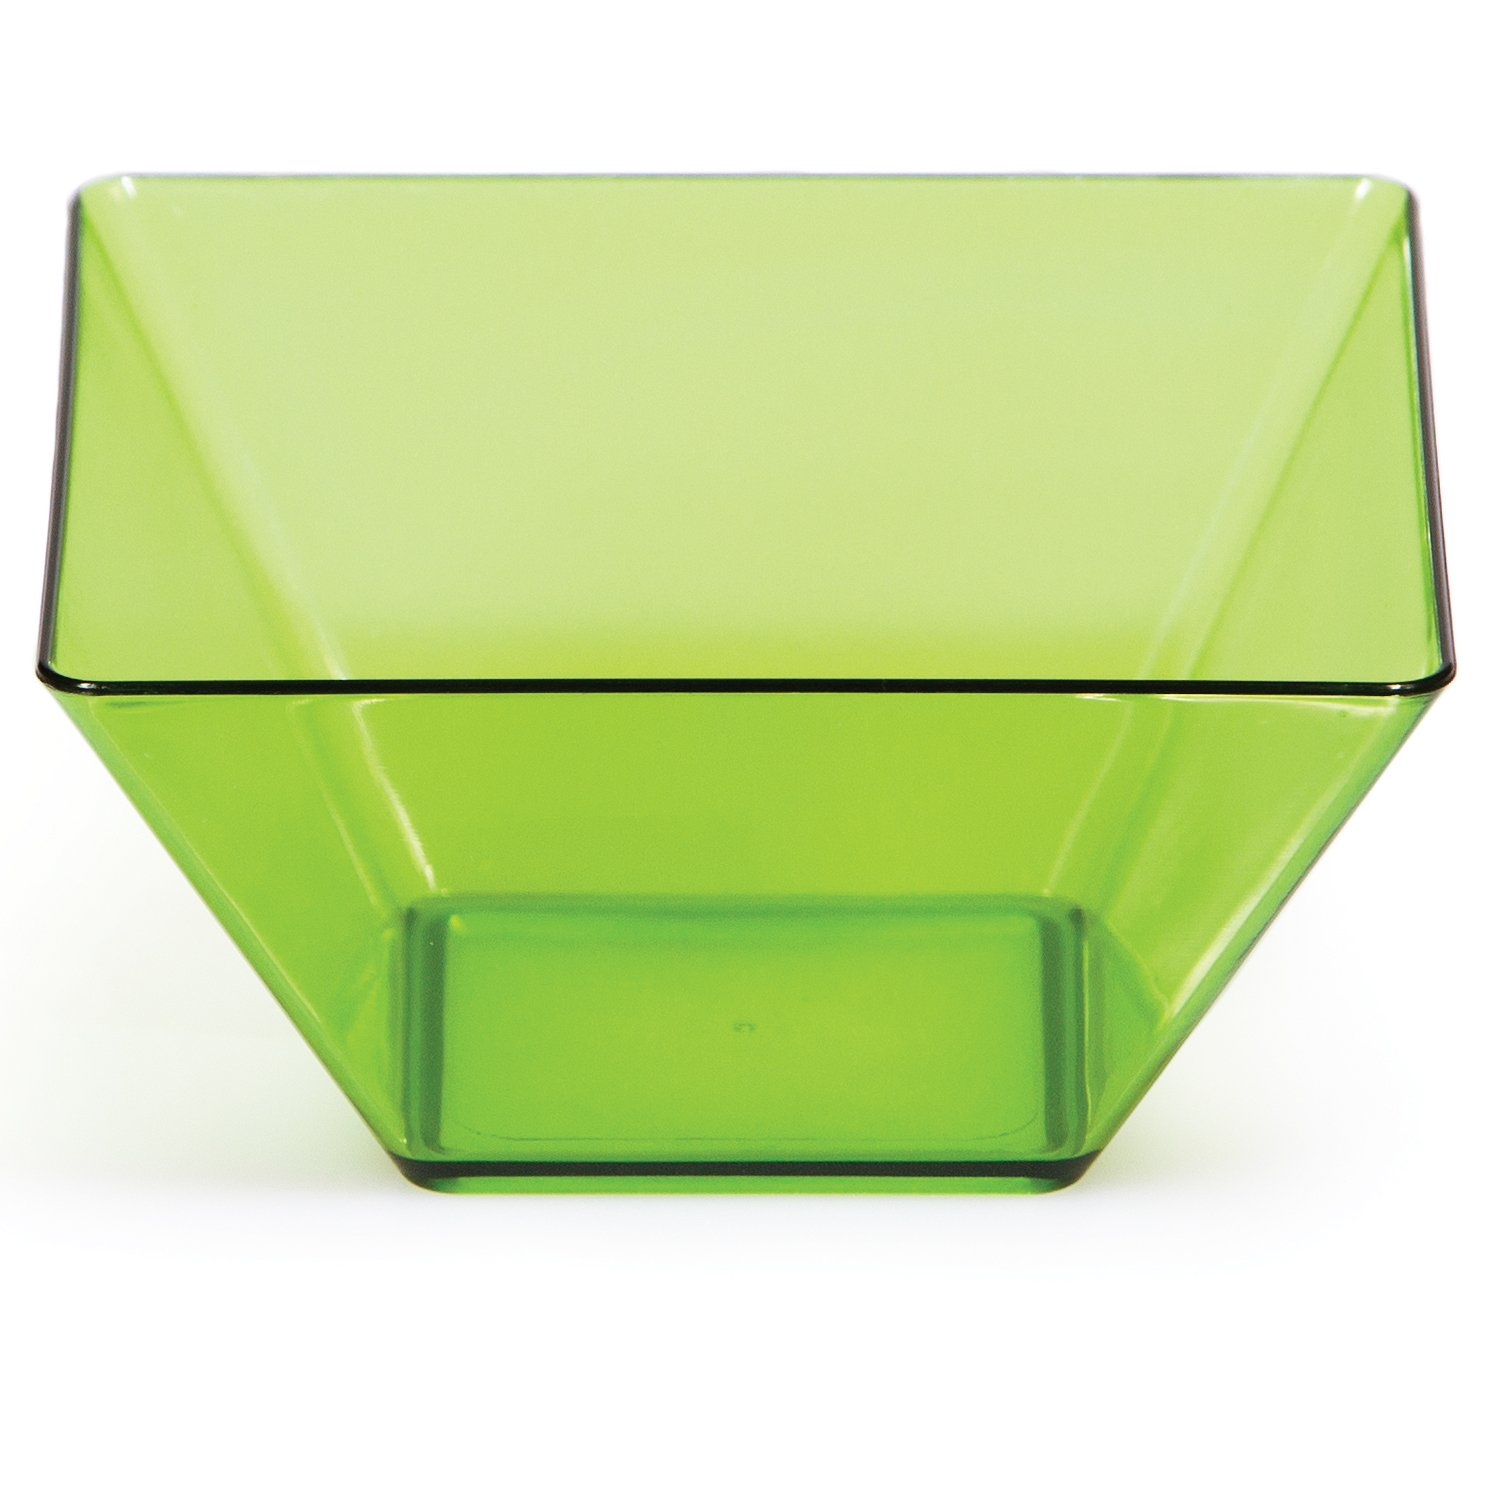 Creative Converting 8 Count 3.5-Inch Square Plastic Bowls, Mini, Translucent Green